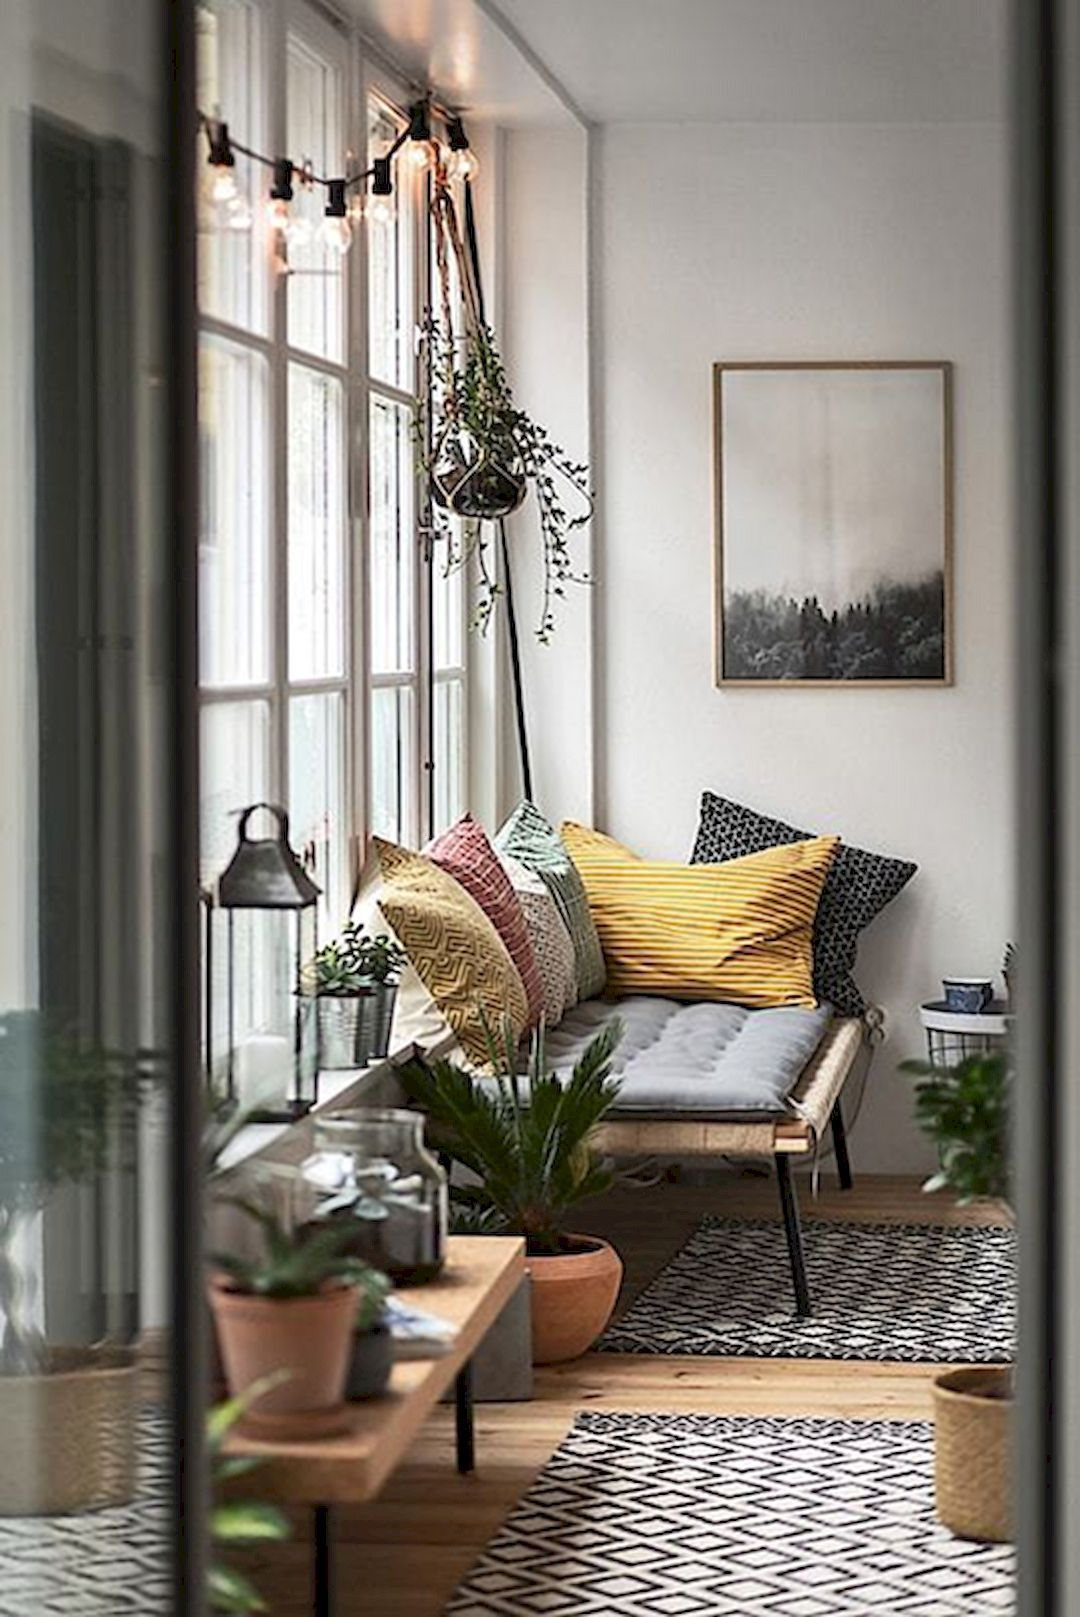 Room interior design cosy traditional danish scandinavian also  santa monica masterpiece by ryan saghian rue living rooms rh pinterest